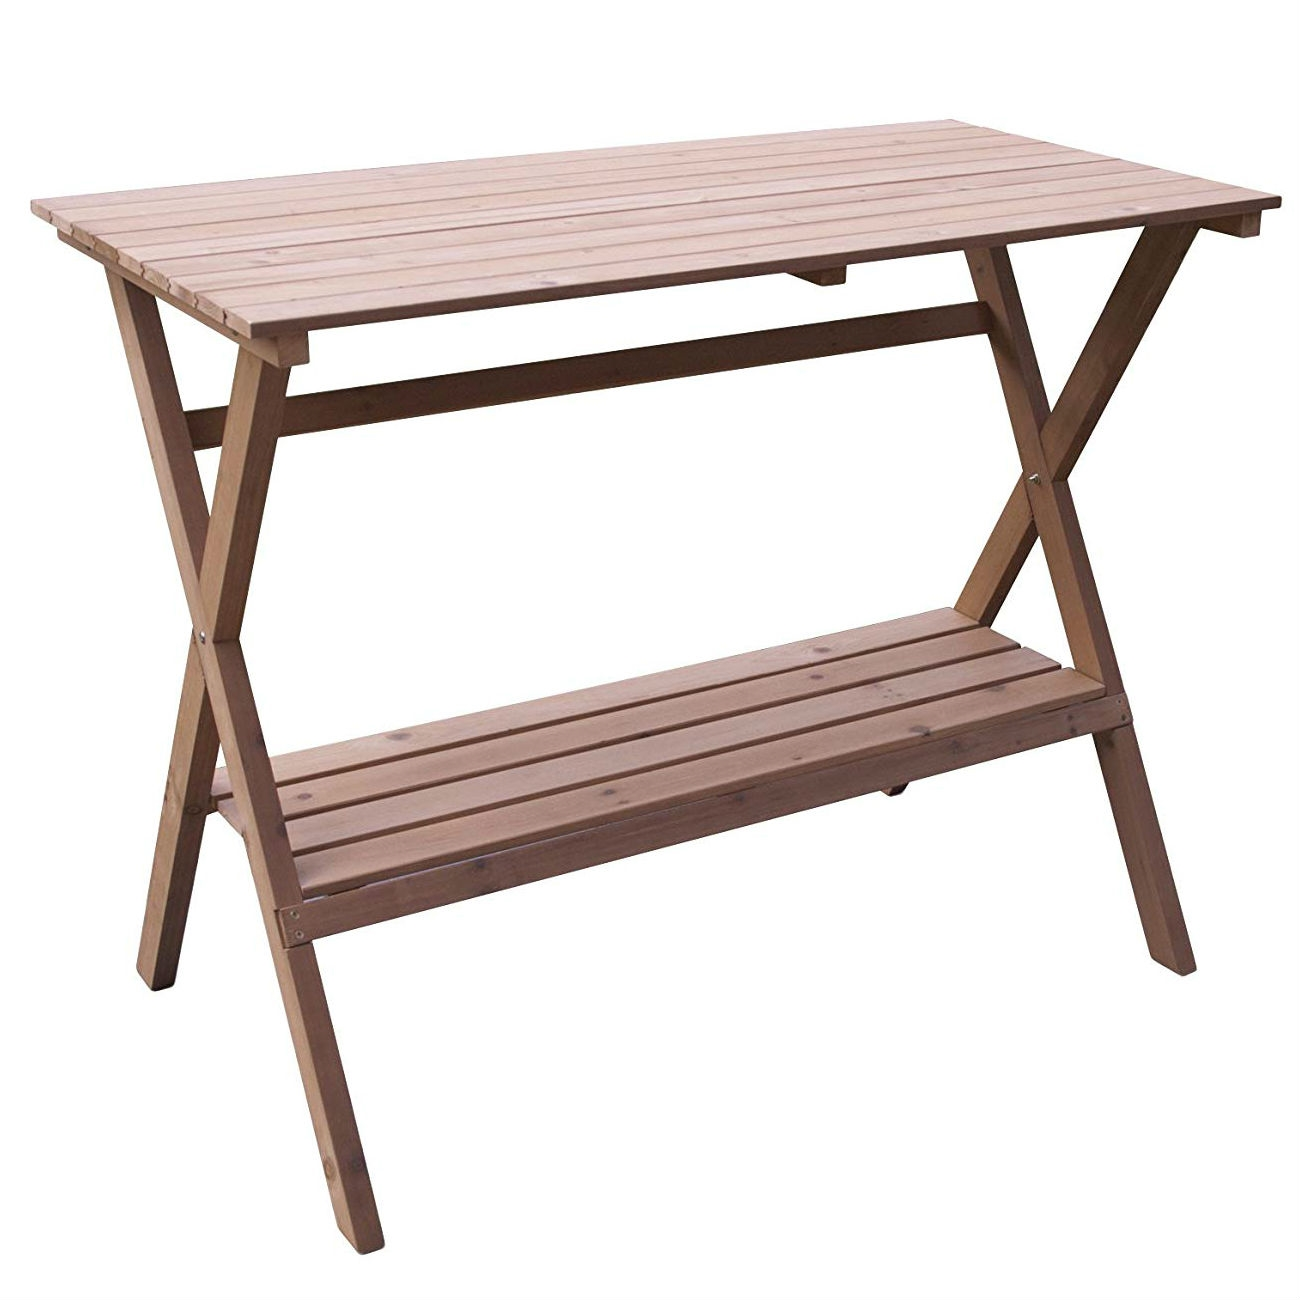 Awe Inspiring Indoor Outdoor Wood Potting Bench Garden Table With Lower Shelf Ocoug Best Dining Table And Chair Ideas Images Ocougorg